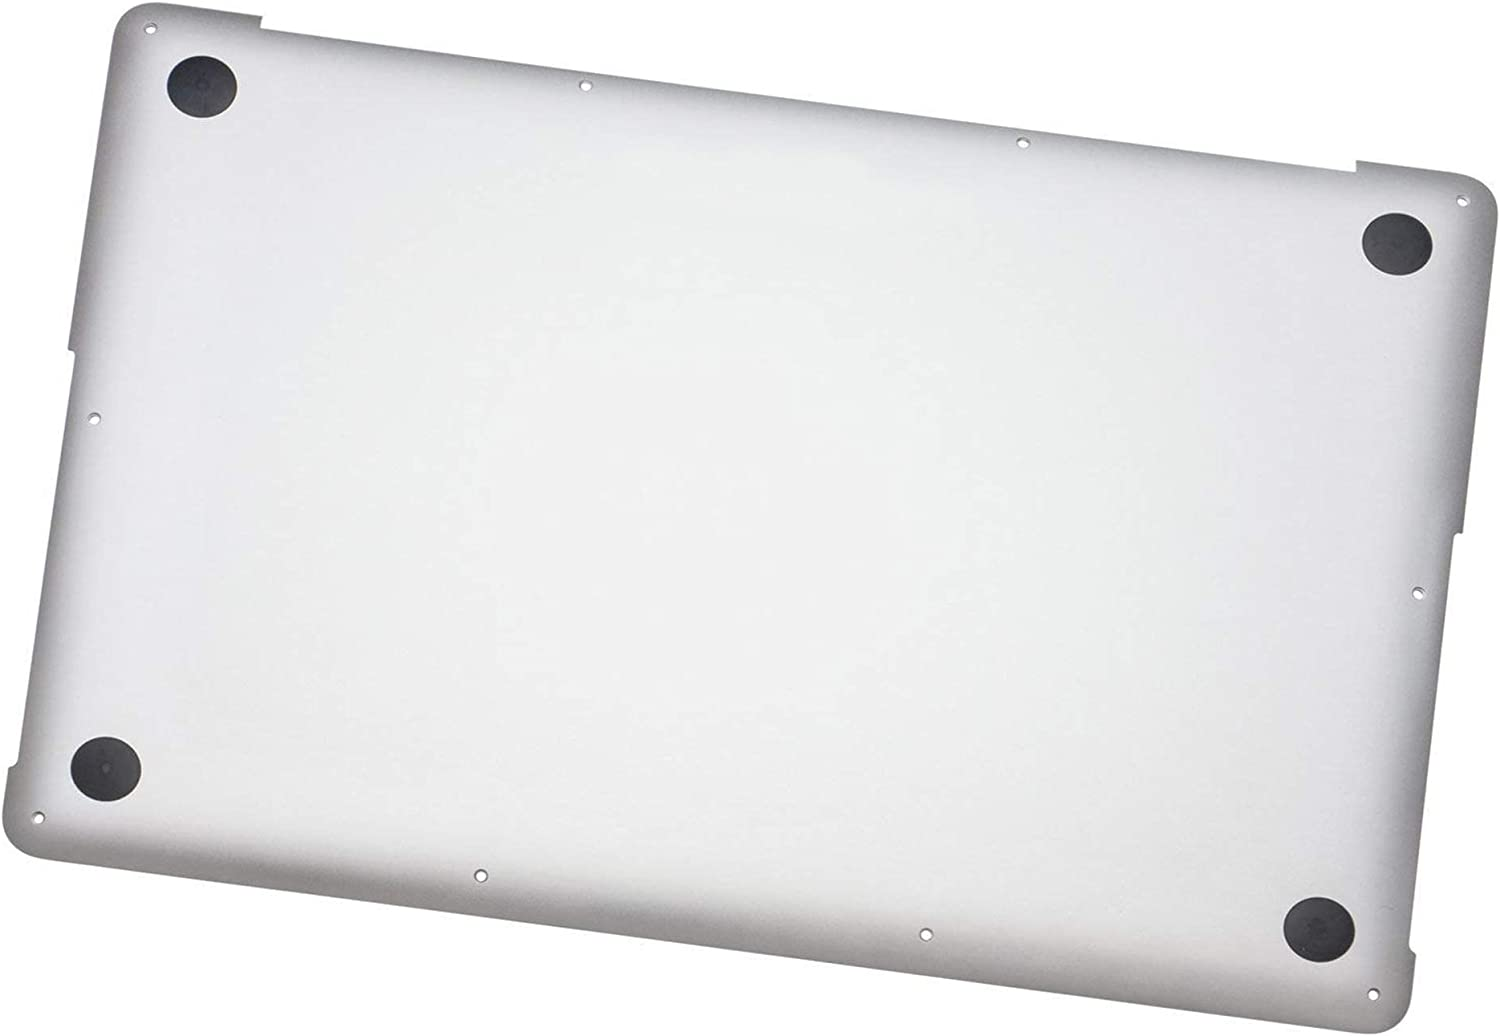 Replacement Lower Bottom Case Fits for Apple MacBook Pro Retina 15 A1398